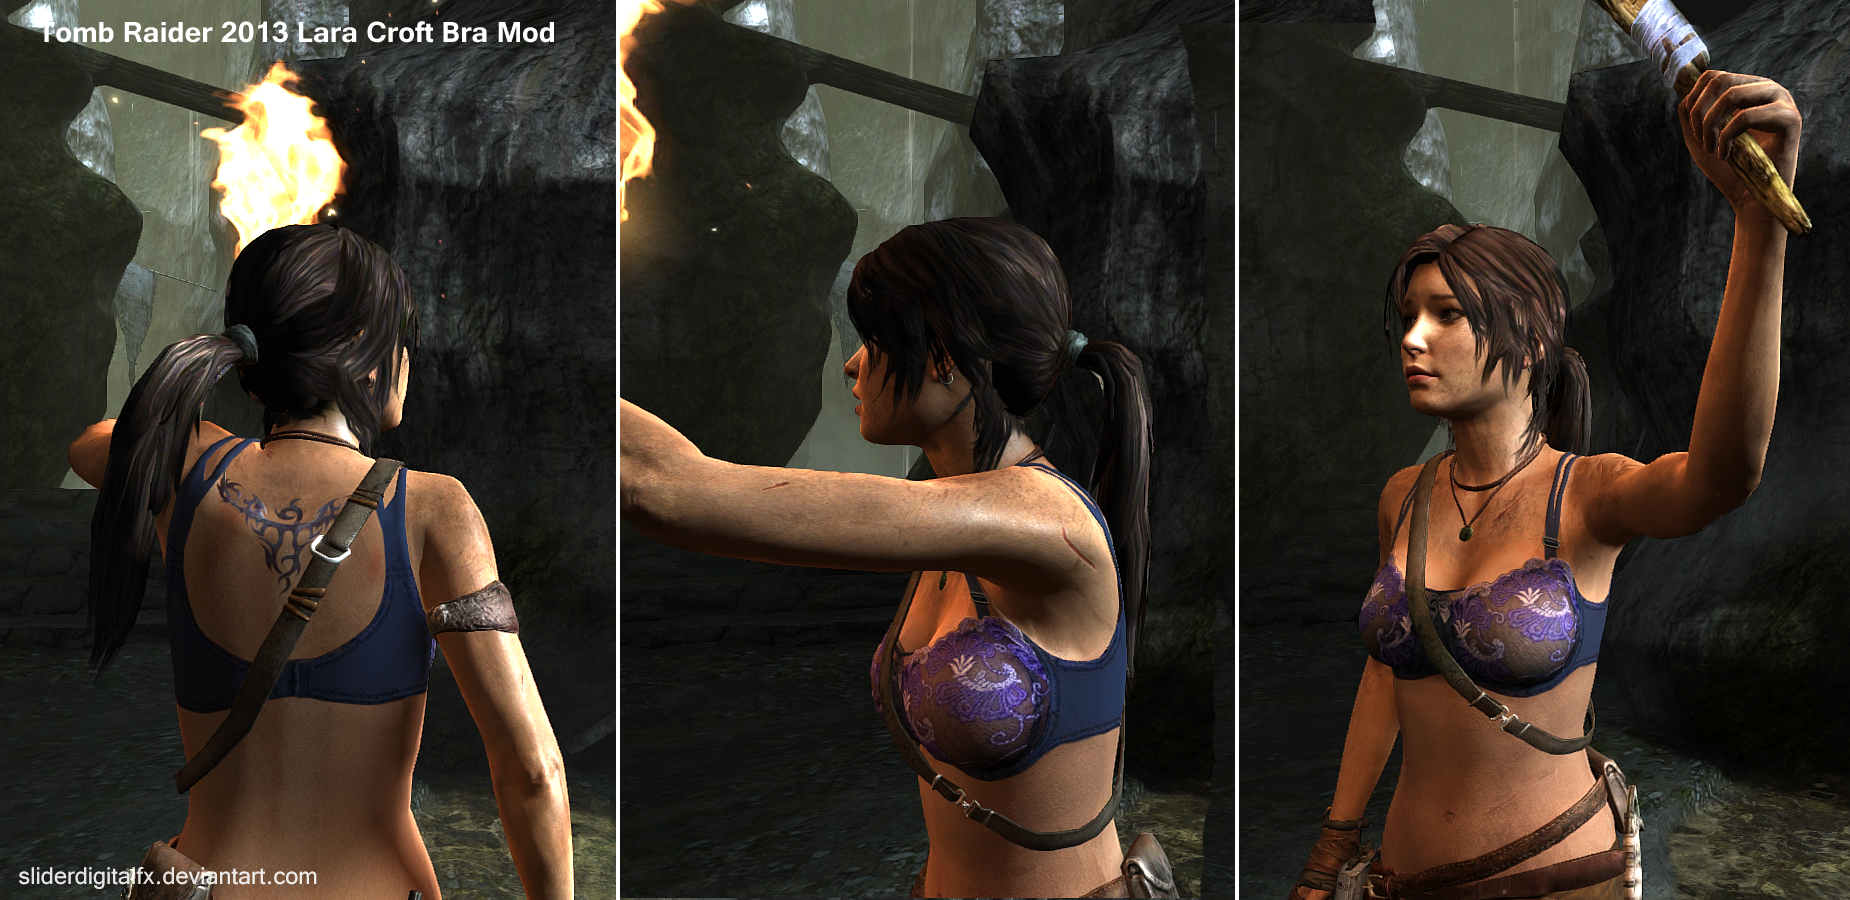 New Shadow of the Tomb Raider mod replaces Laras face